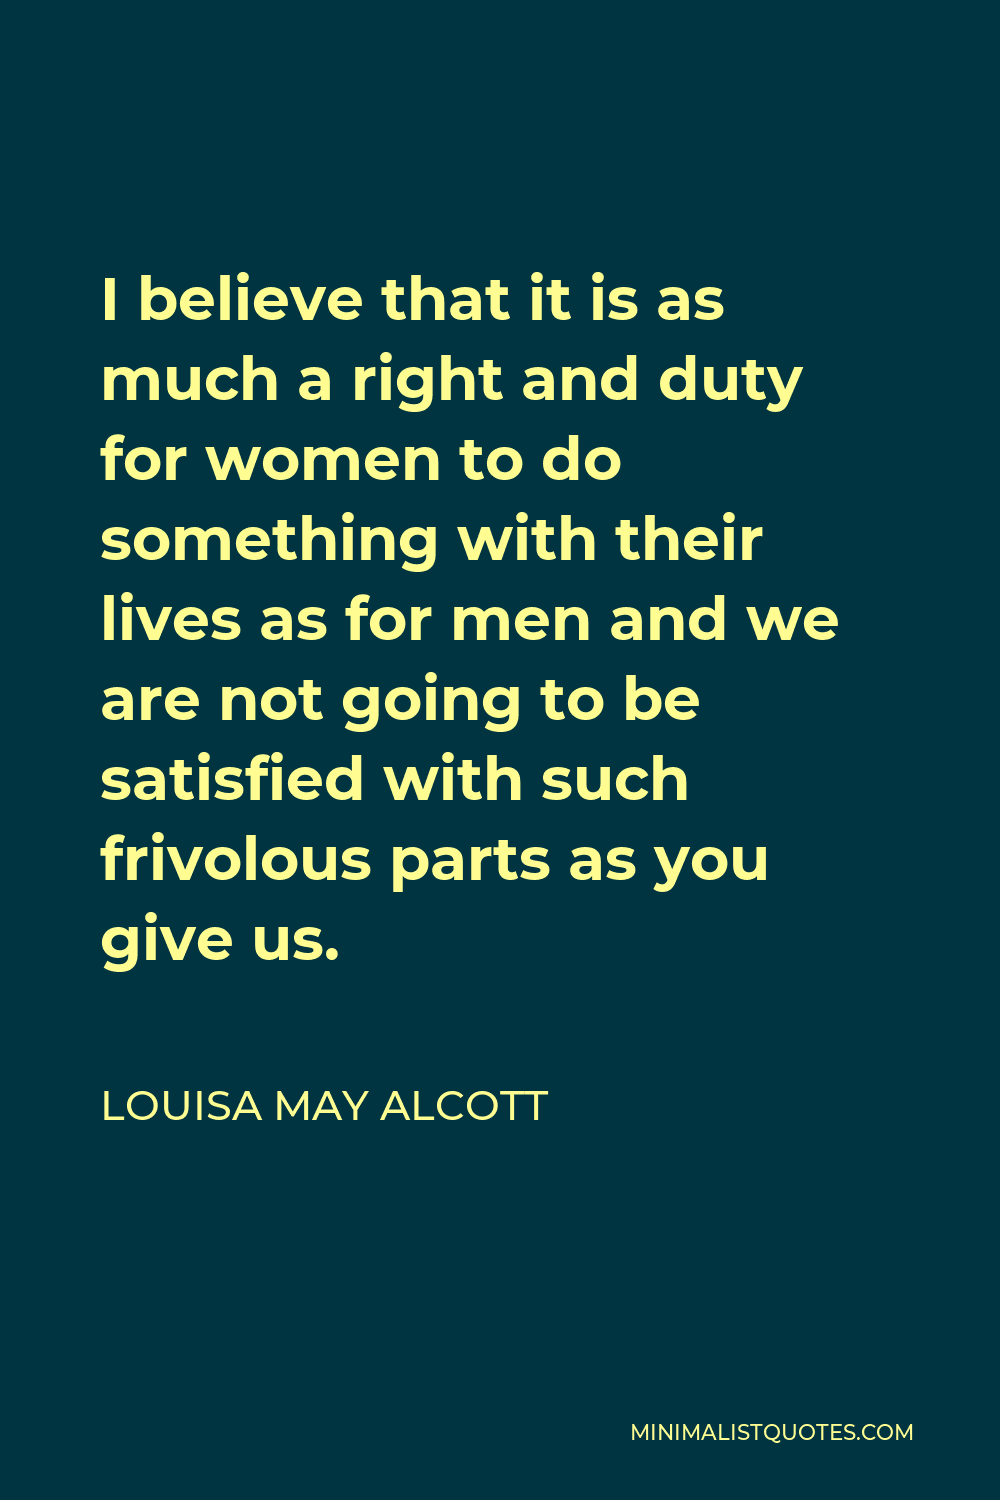 Louisa May Alcott Quote - I believe that it is as much a right and duty for women to do something with their lives as for men and we are not going to be satisfied with such frivolous parts as you give us.